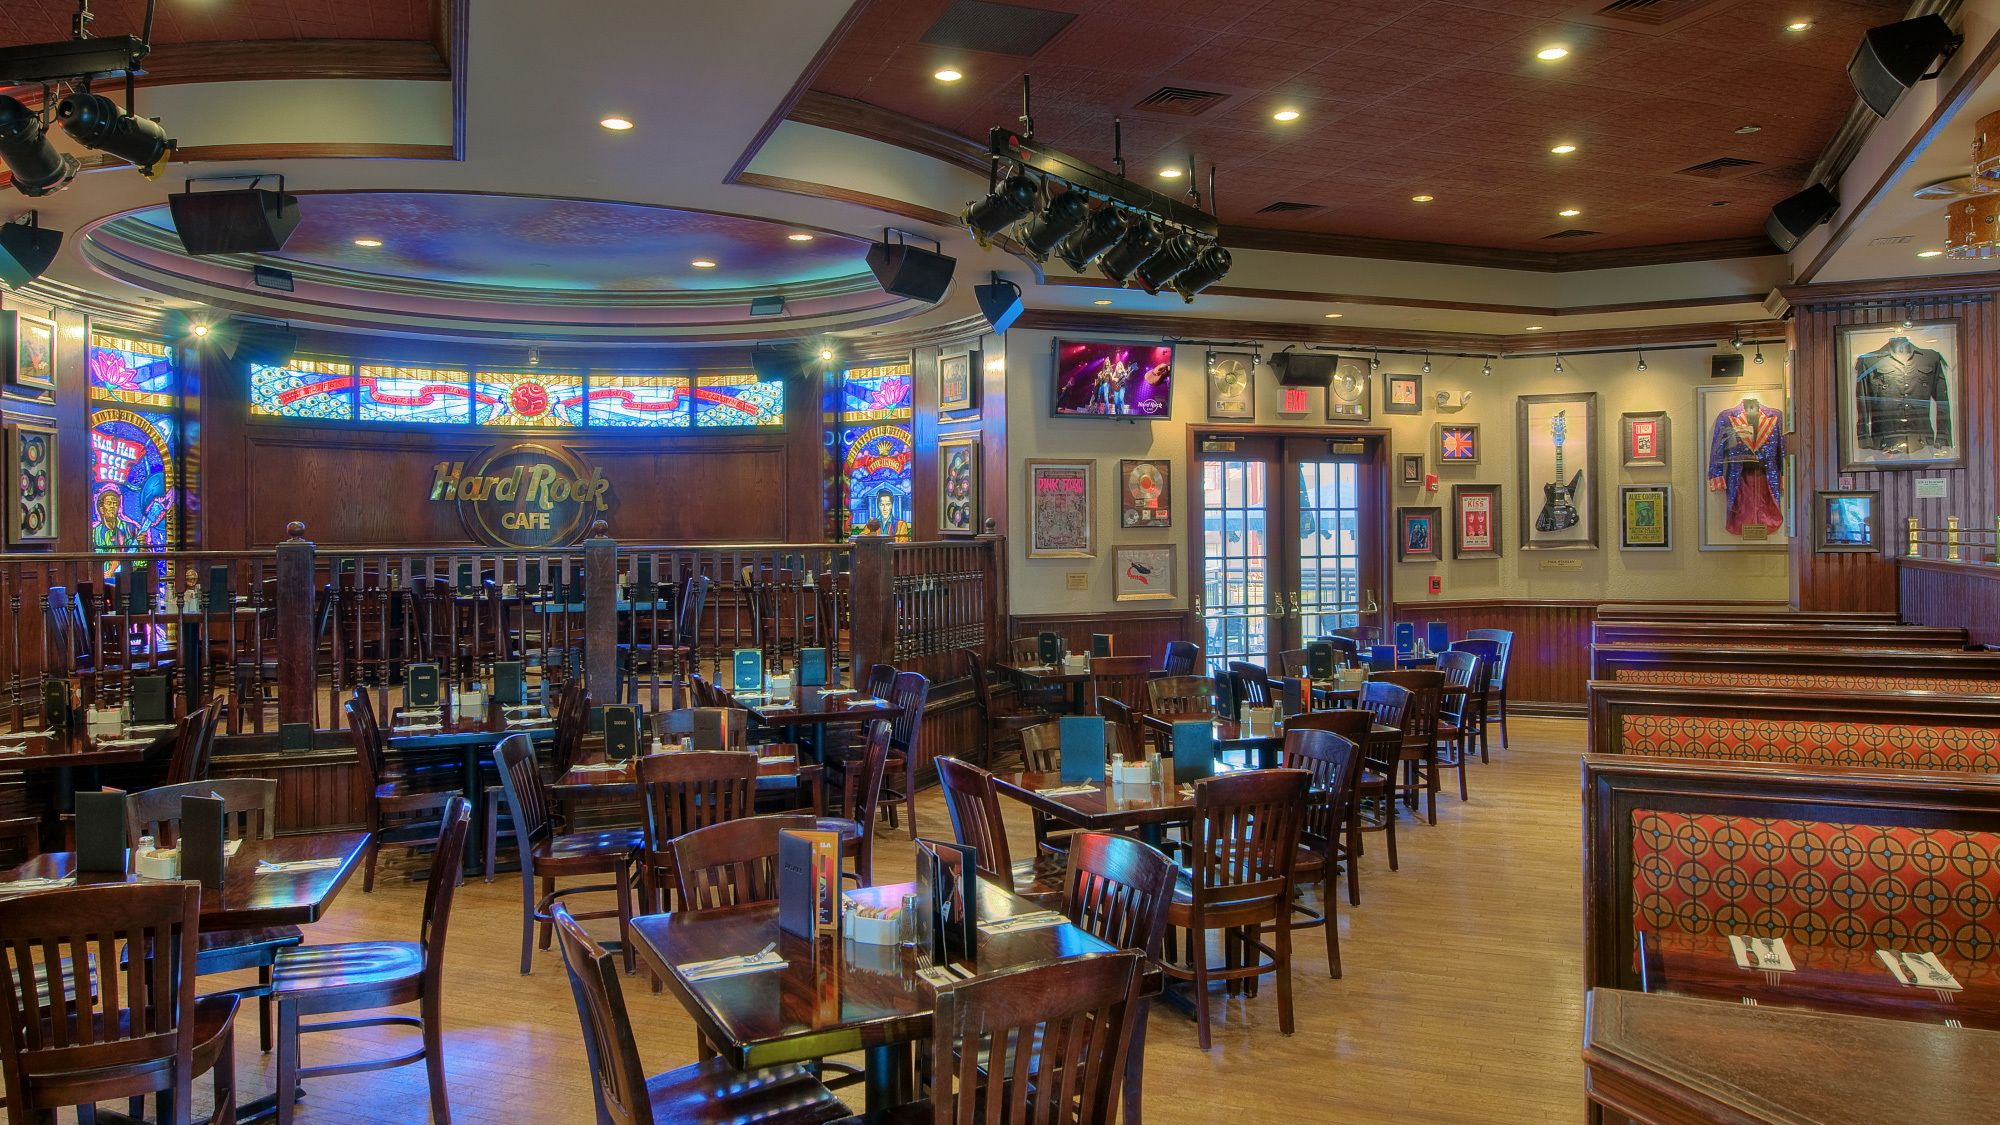 Dining area of the St. Louis Hard Rock Cafe